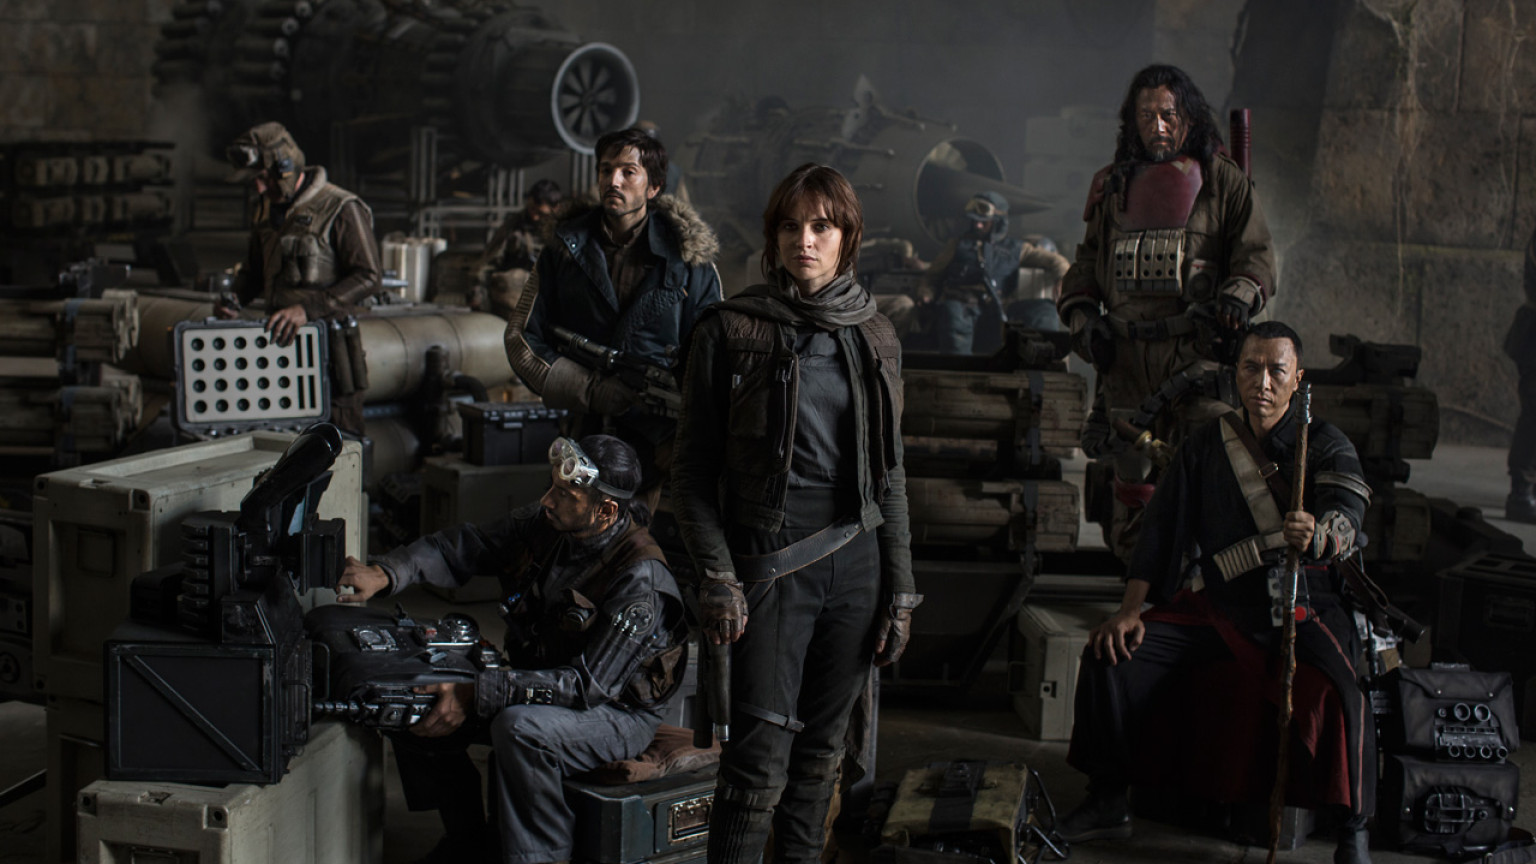 First look at full cast of Star Wars: Rogue One reveals Mads Mikkelsen and Alan Tudyk